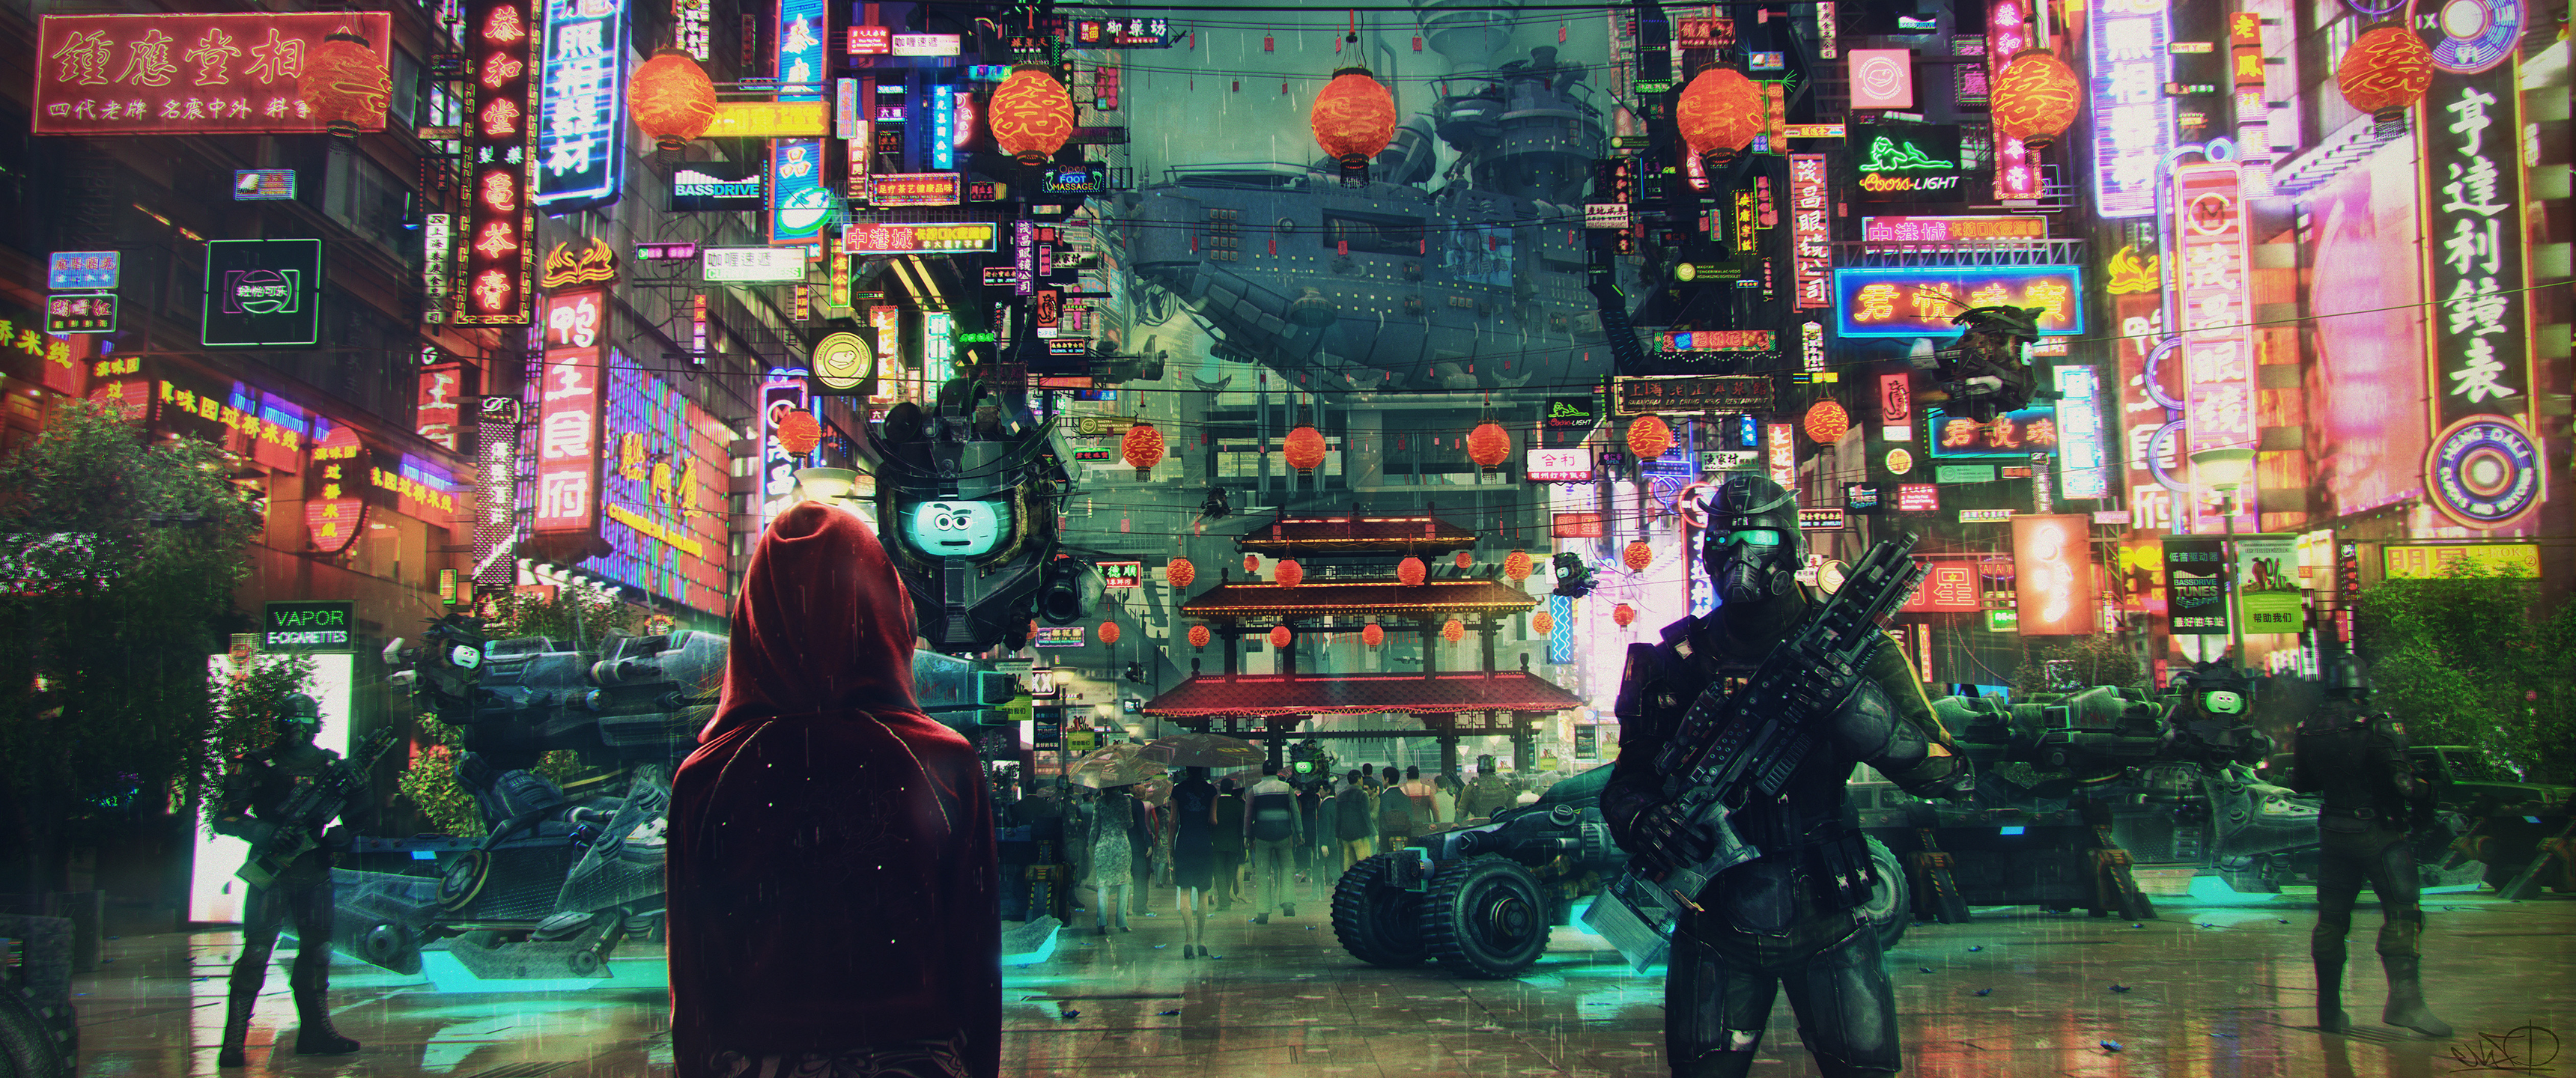 General 3440x1440 science fiction cyberpunk cityscape soldier Asian architecture neon lights ultrawide